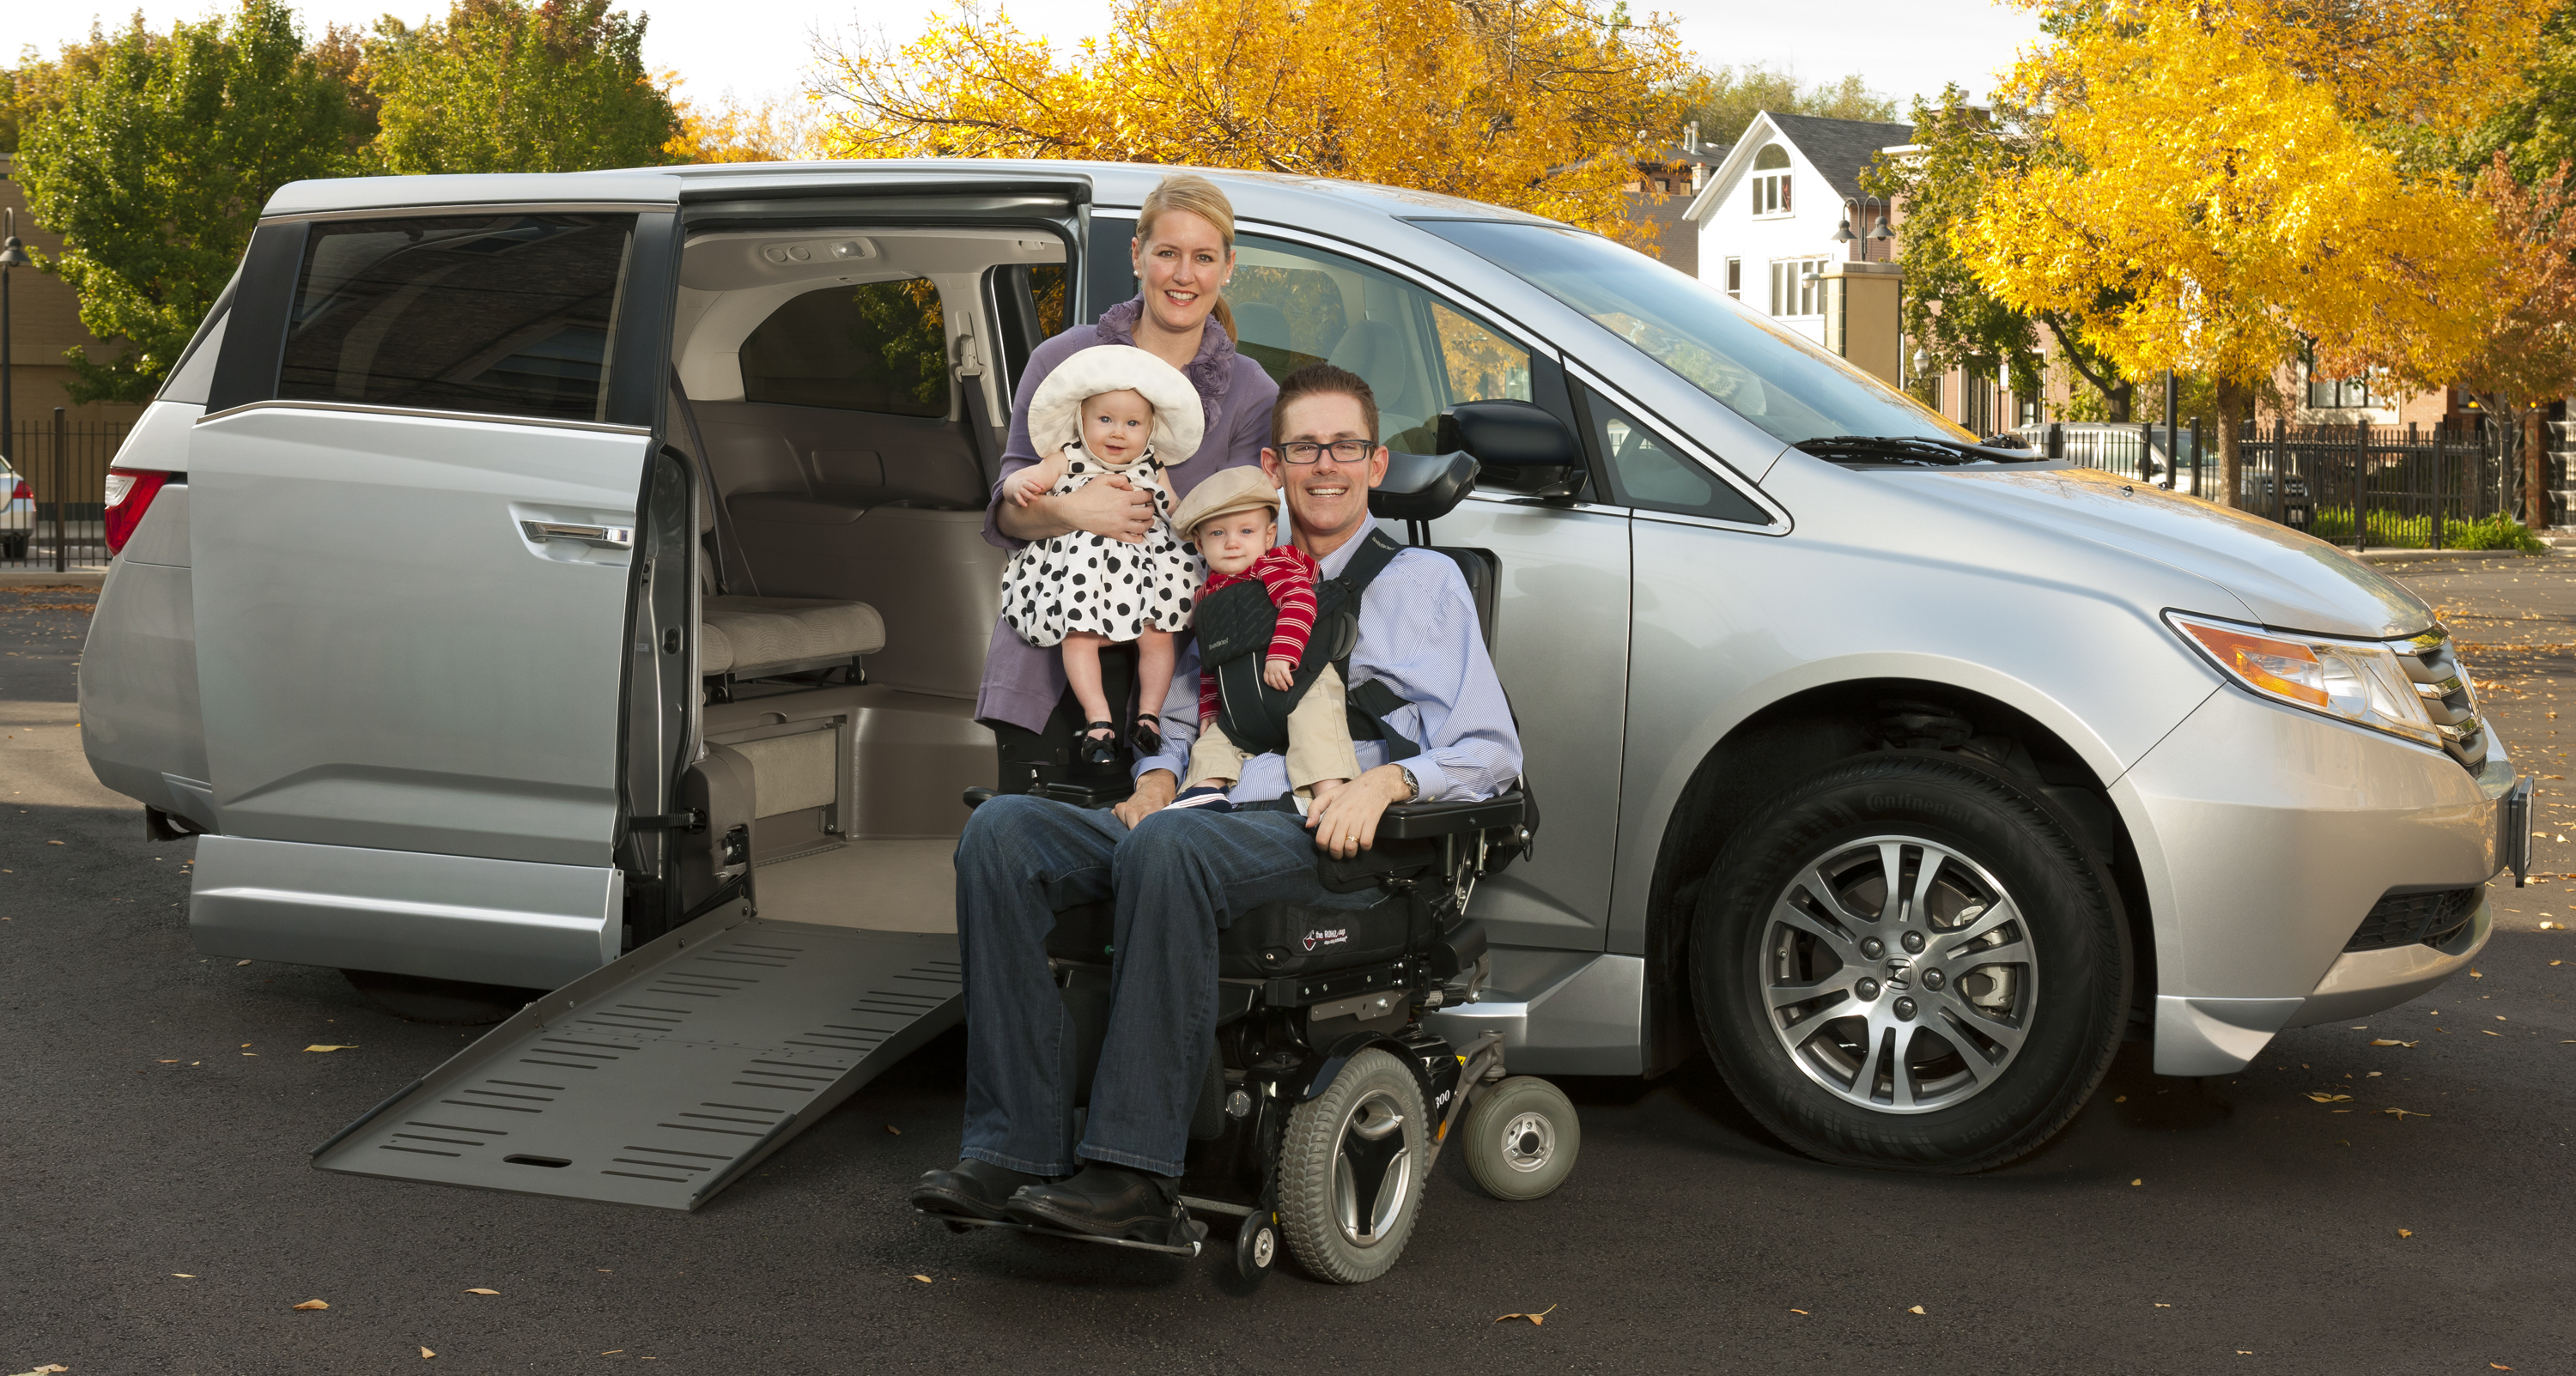 Wheelchair Van Rentals in NJ - New Jersey - NY - New York